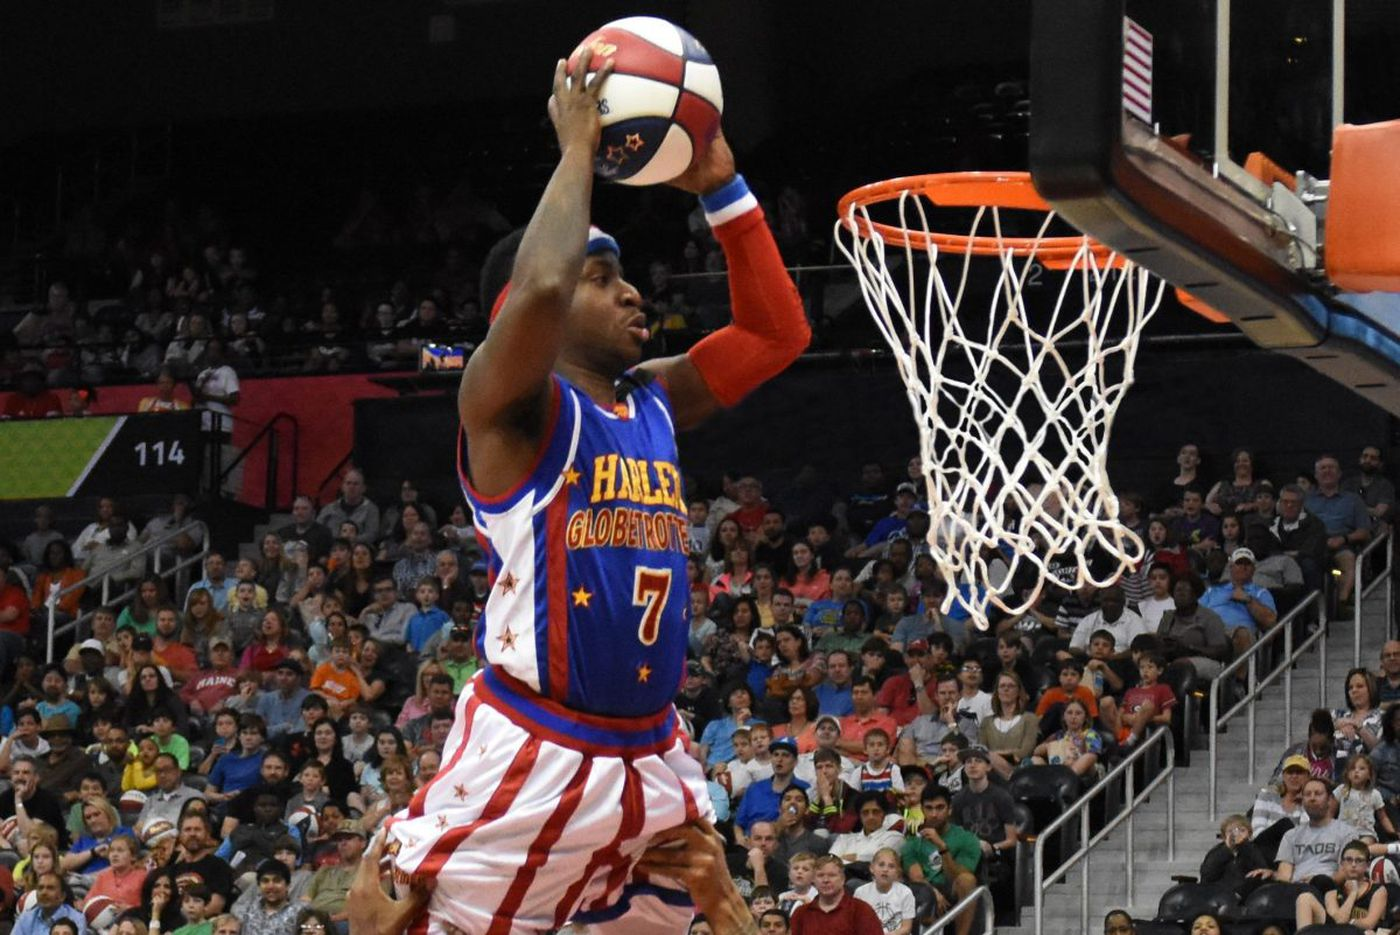 Globetrotters, fishing tournament, and other things to do down the Shore Aug. 18 to 24